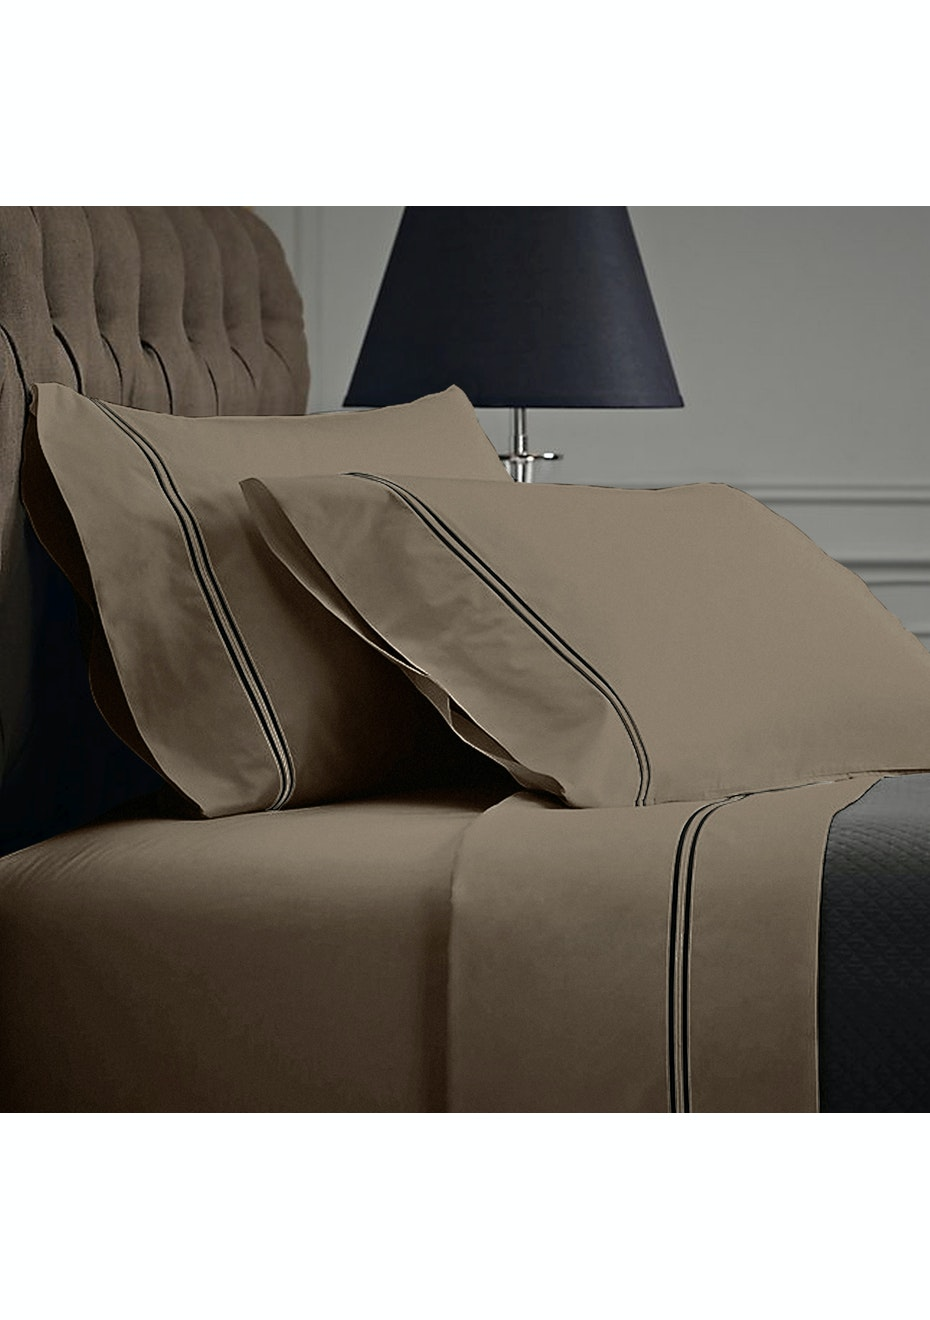 Style & Co 1000 Thread count Egyptian Cotton Hotel Collection Sorrento Sheet sets King Linen